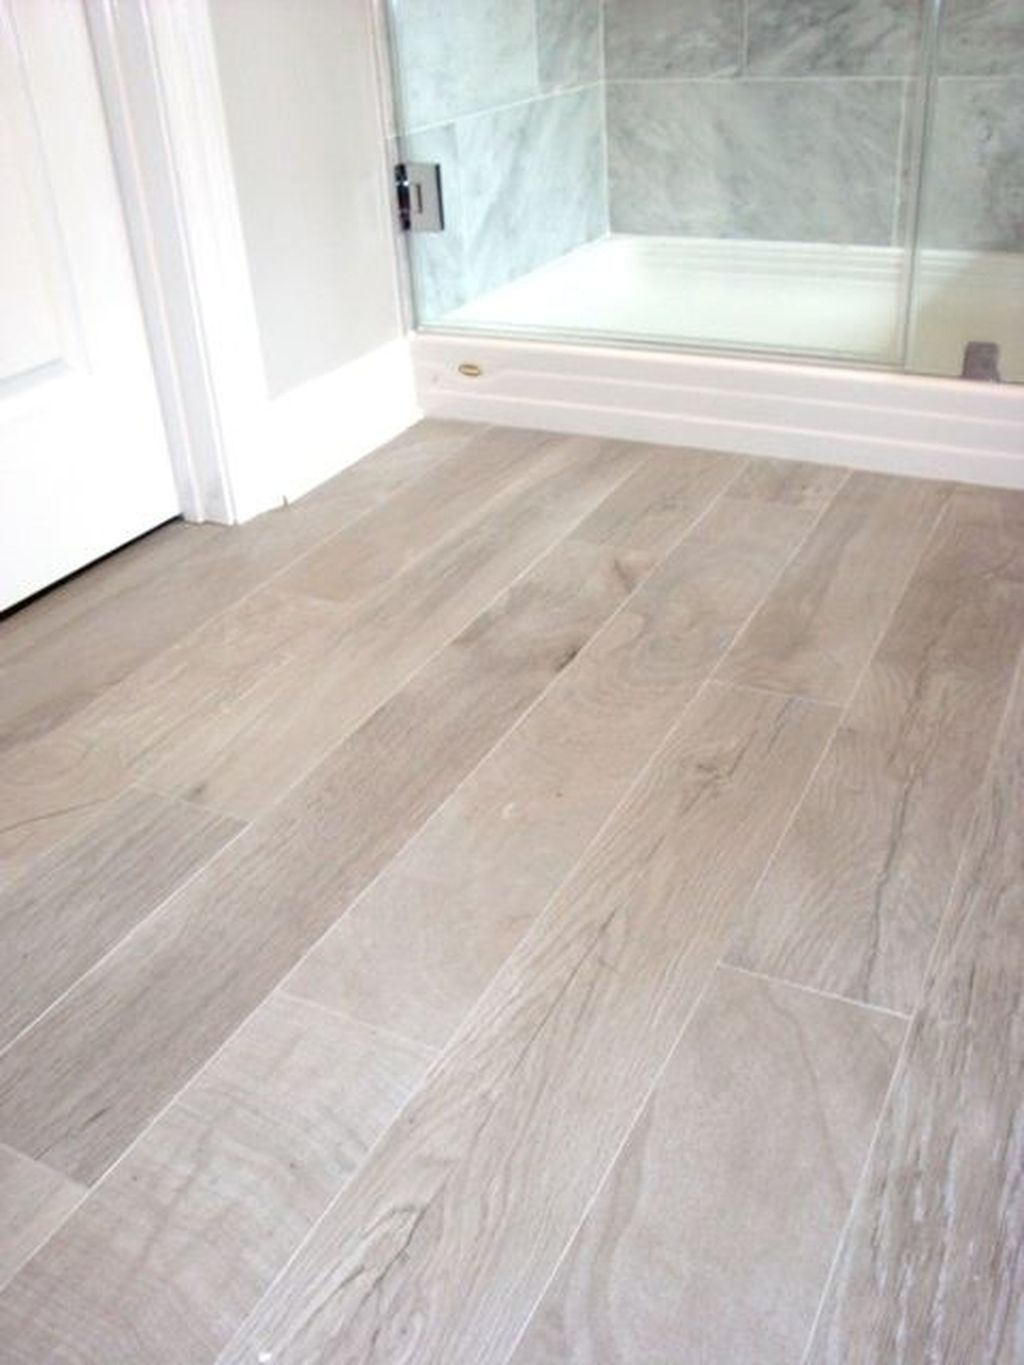 40 outstanding porcelain tile kitchen floors ideas kitchen 40 outstanding porcelain tile kitchen floors ideas dailygadgetfo Choice Image